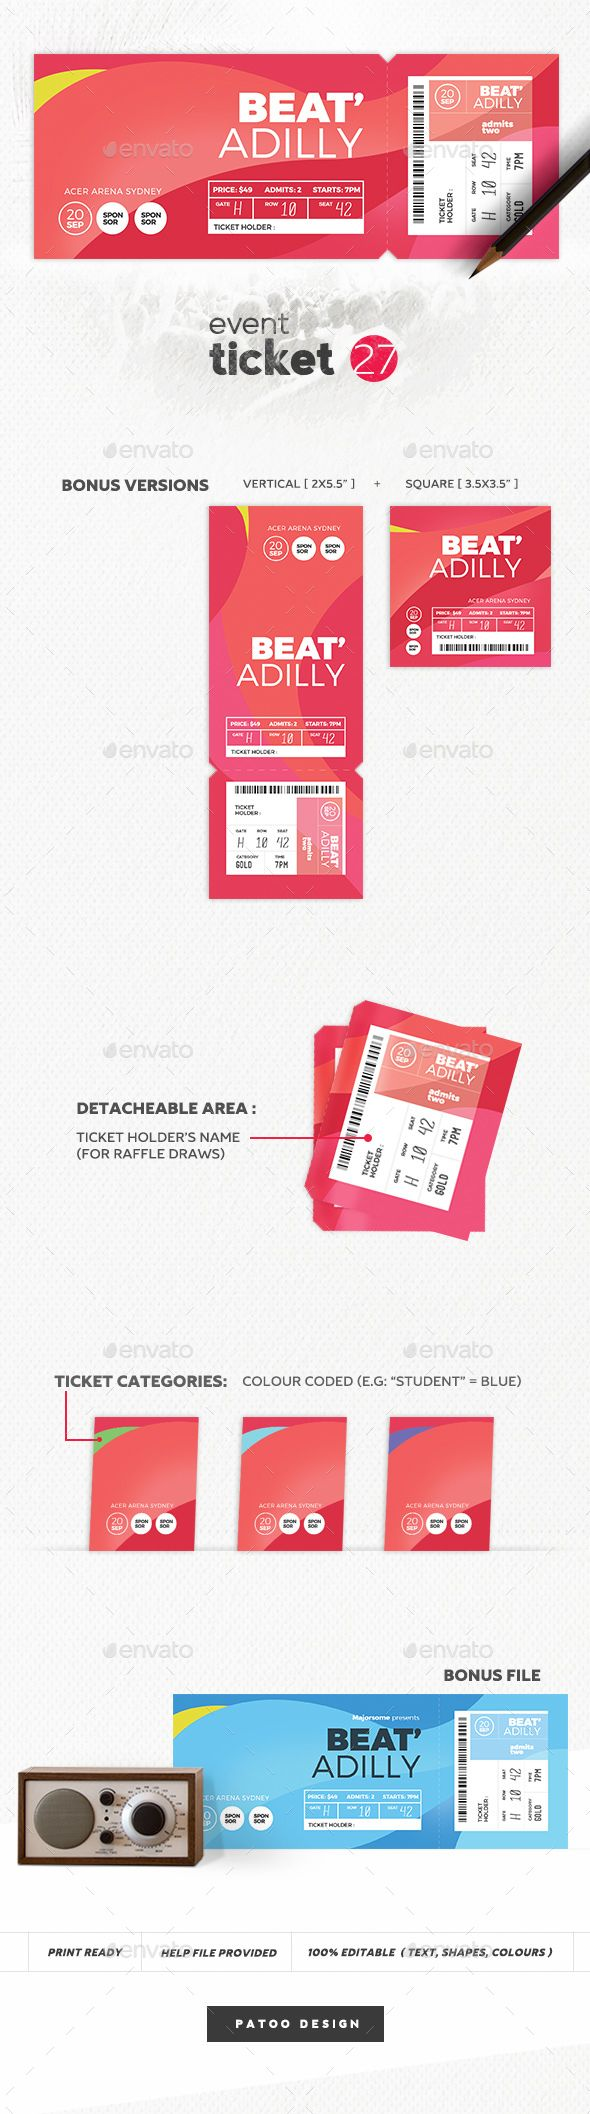 Event Ticket Template 27 - #Event #Ticket #Print #Template #Design. Download here: https://graphicriver.net/item/event-ticket-template-27/19481068?ref=yinkira